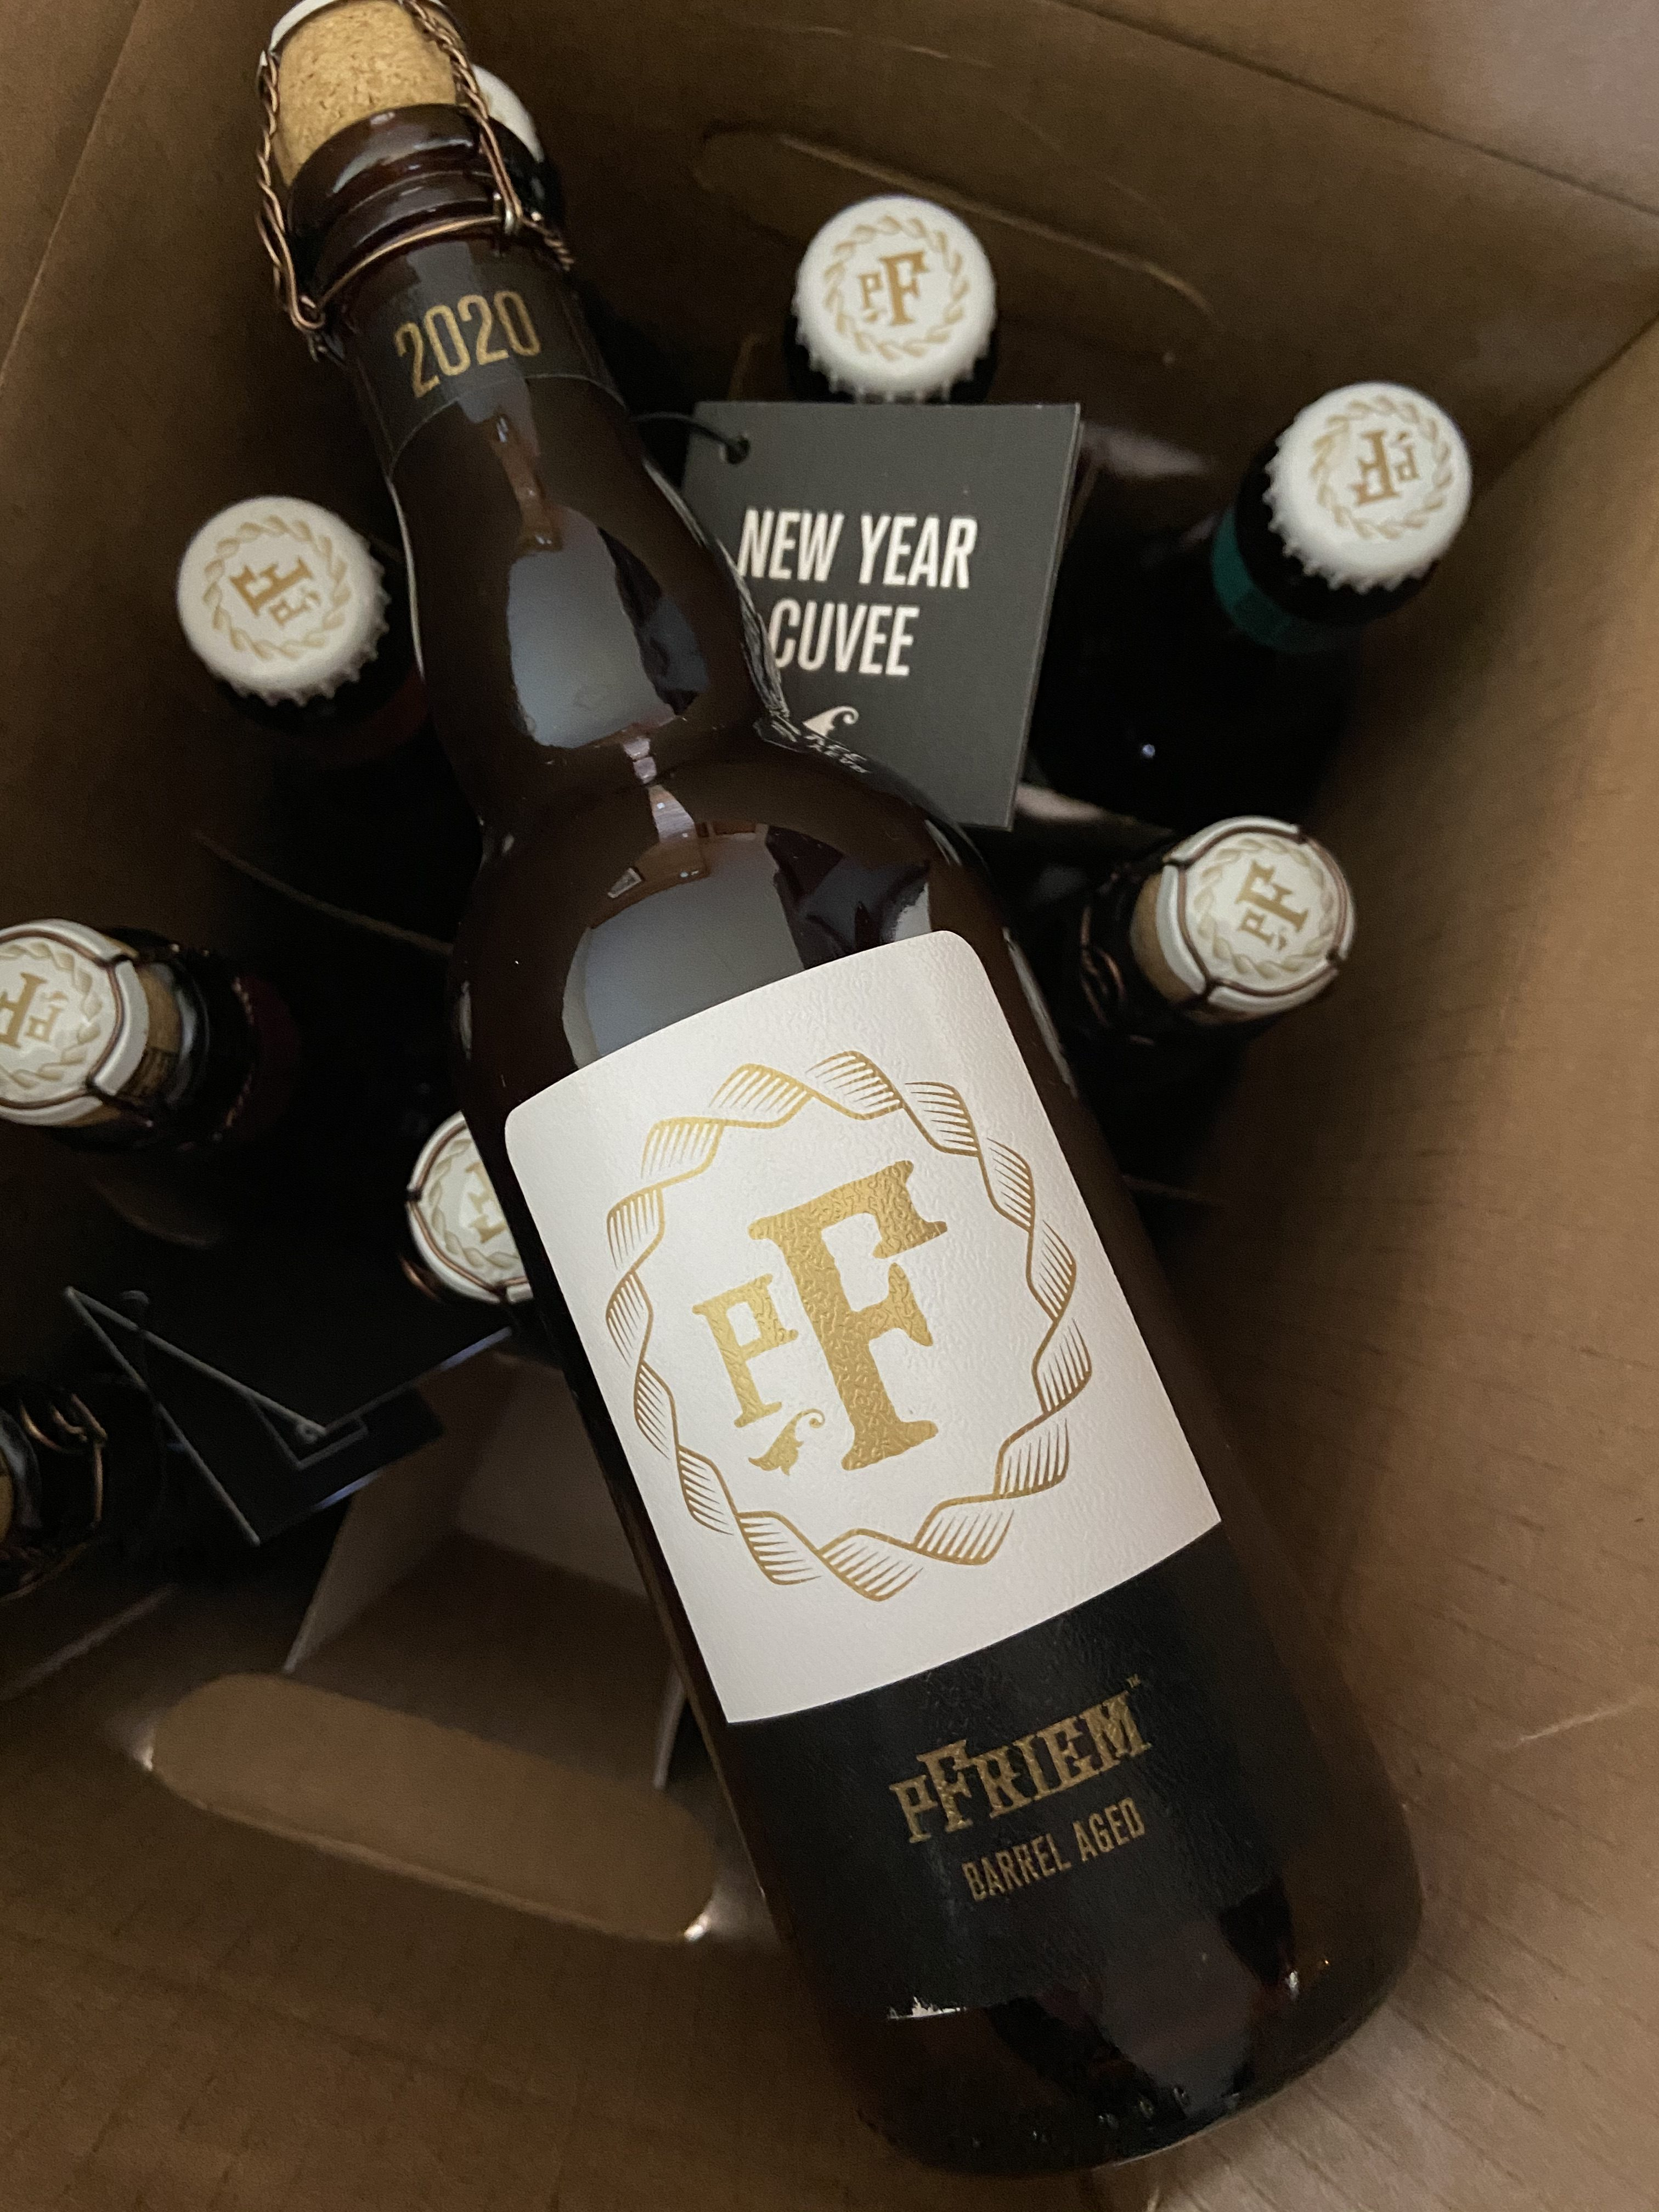 A recent 12 pack offering from pFriem's Beer Club, pFriemsters Union Local 541.